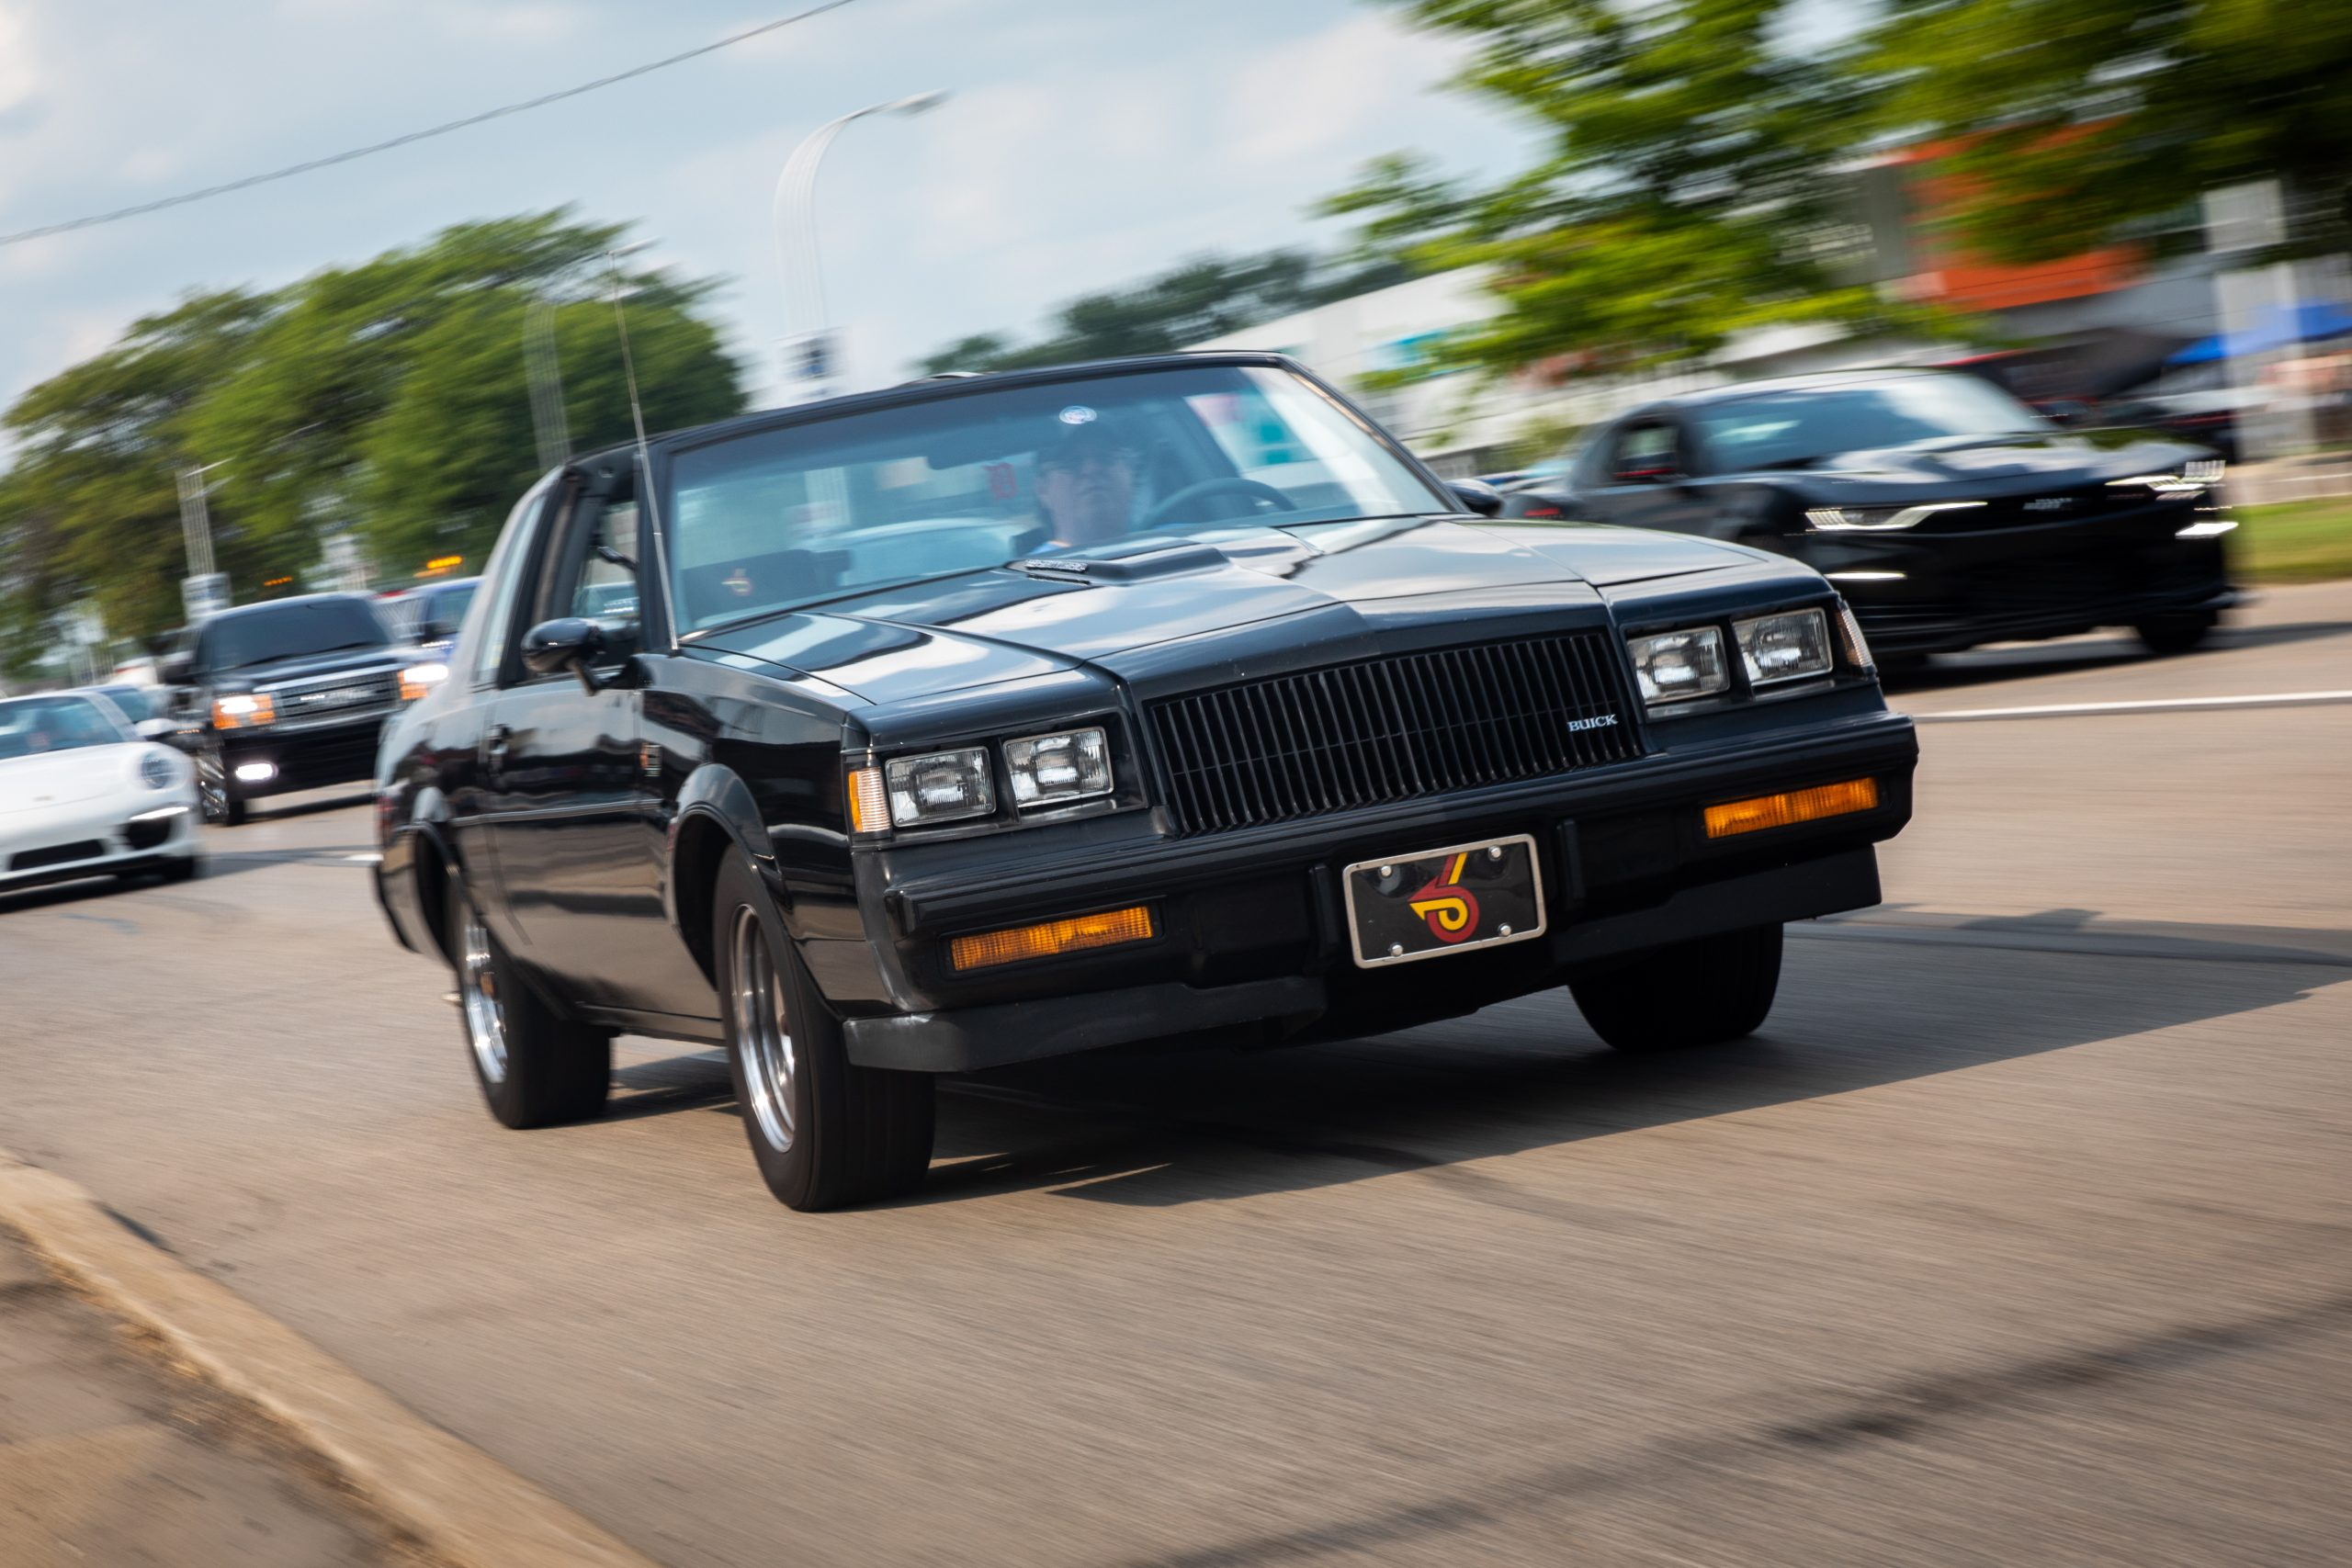 2021 Dream Cruise woodward ave action buick gnx